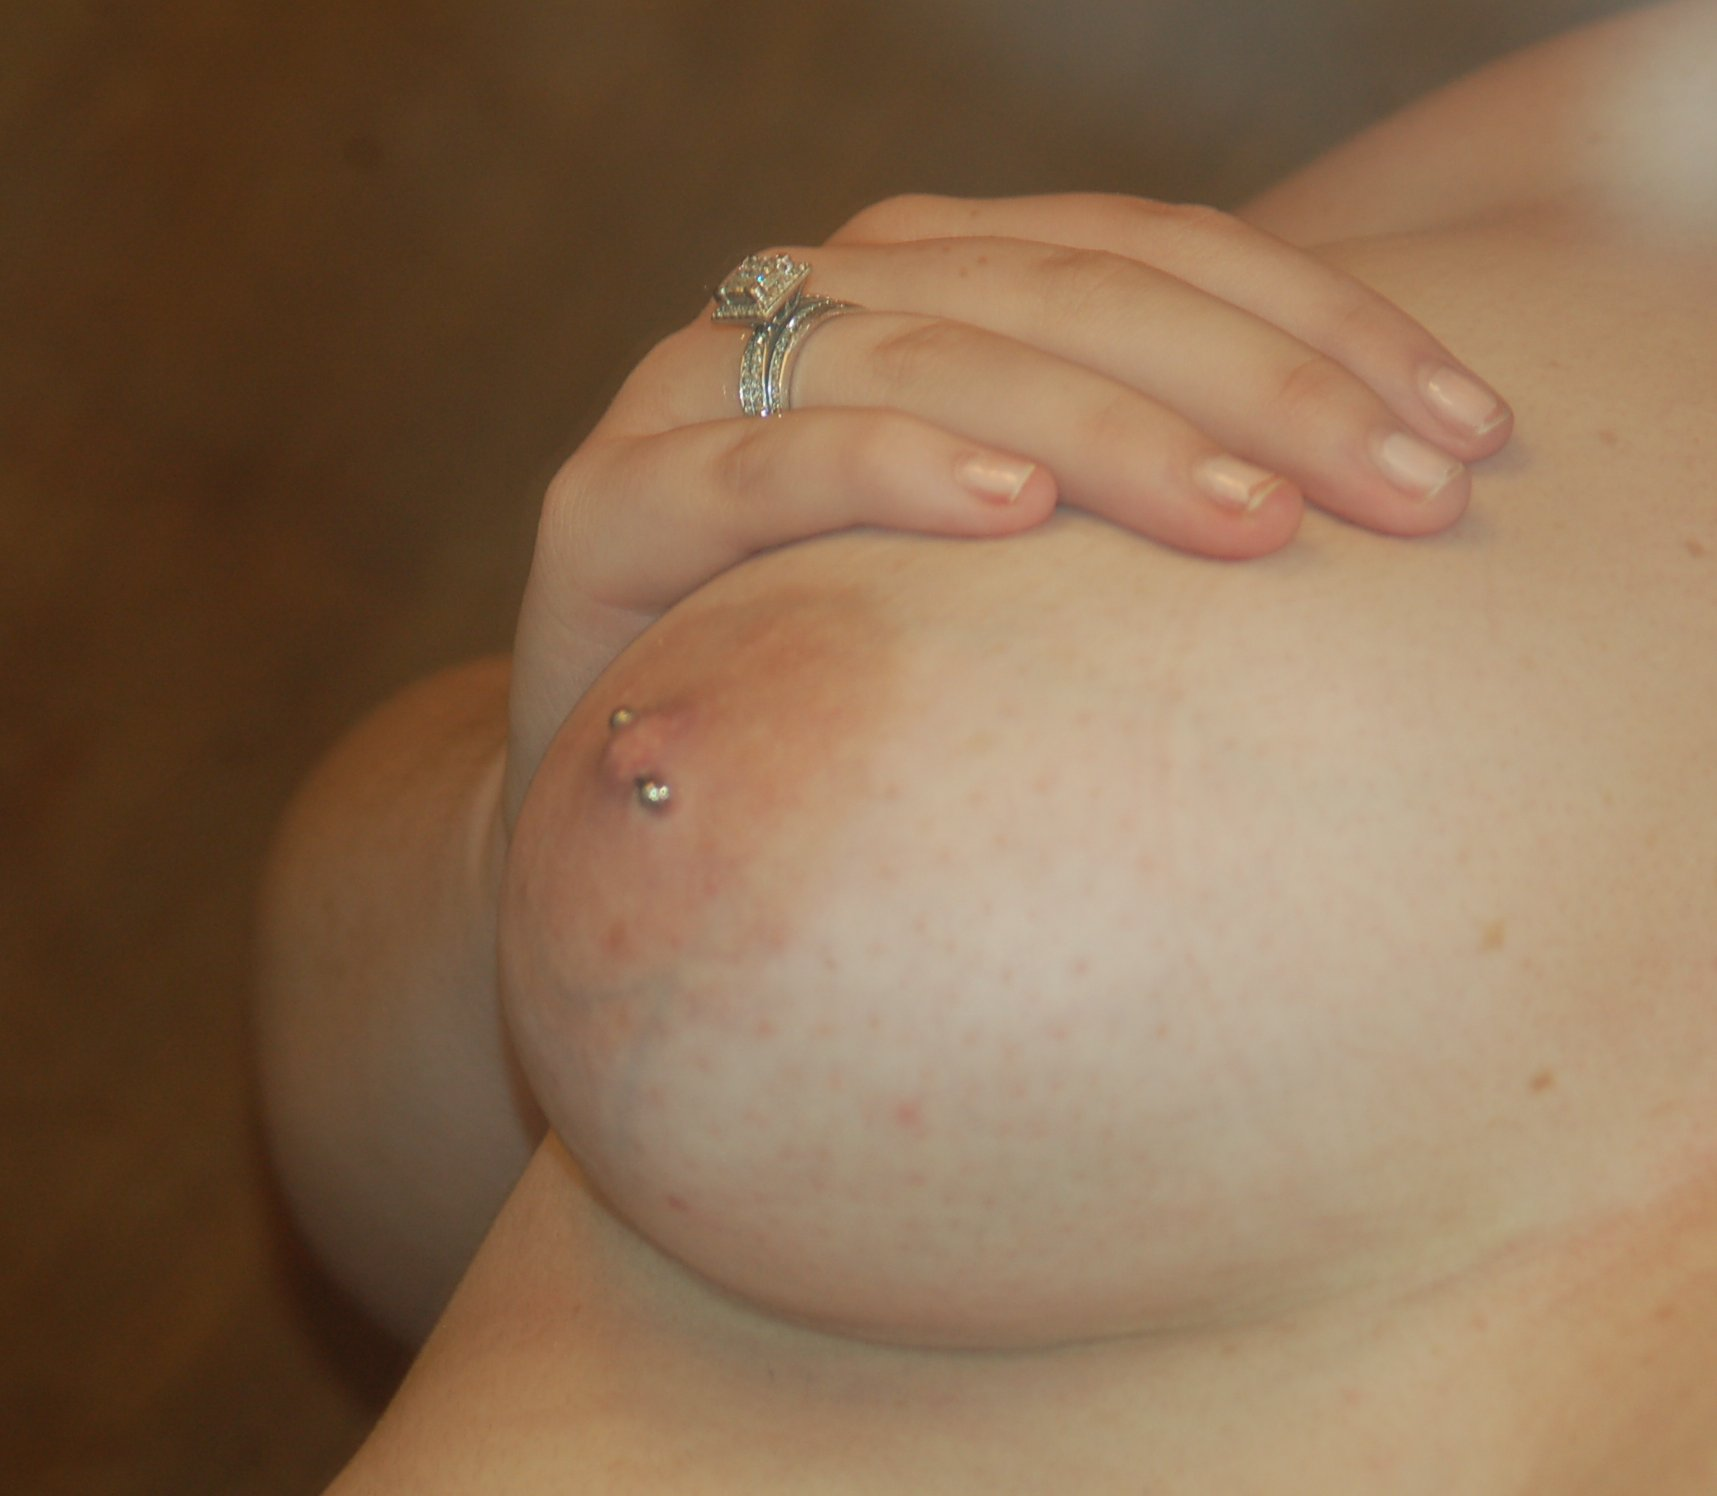 female piercing